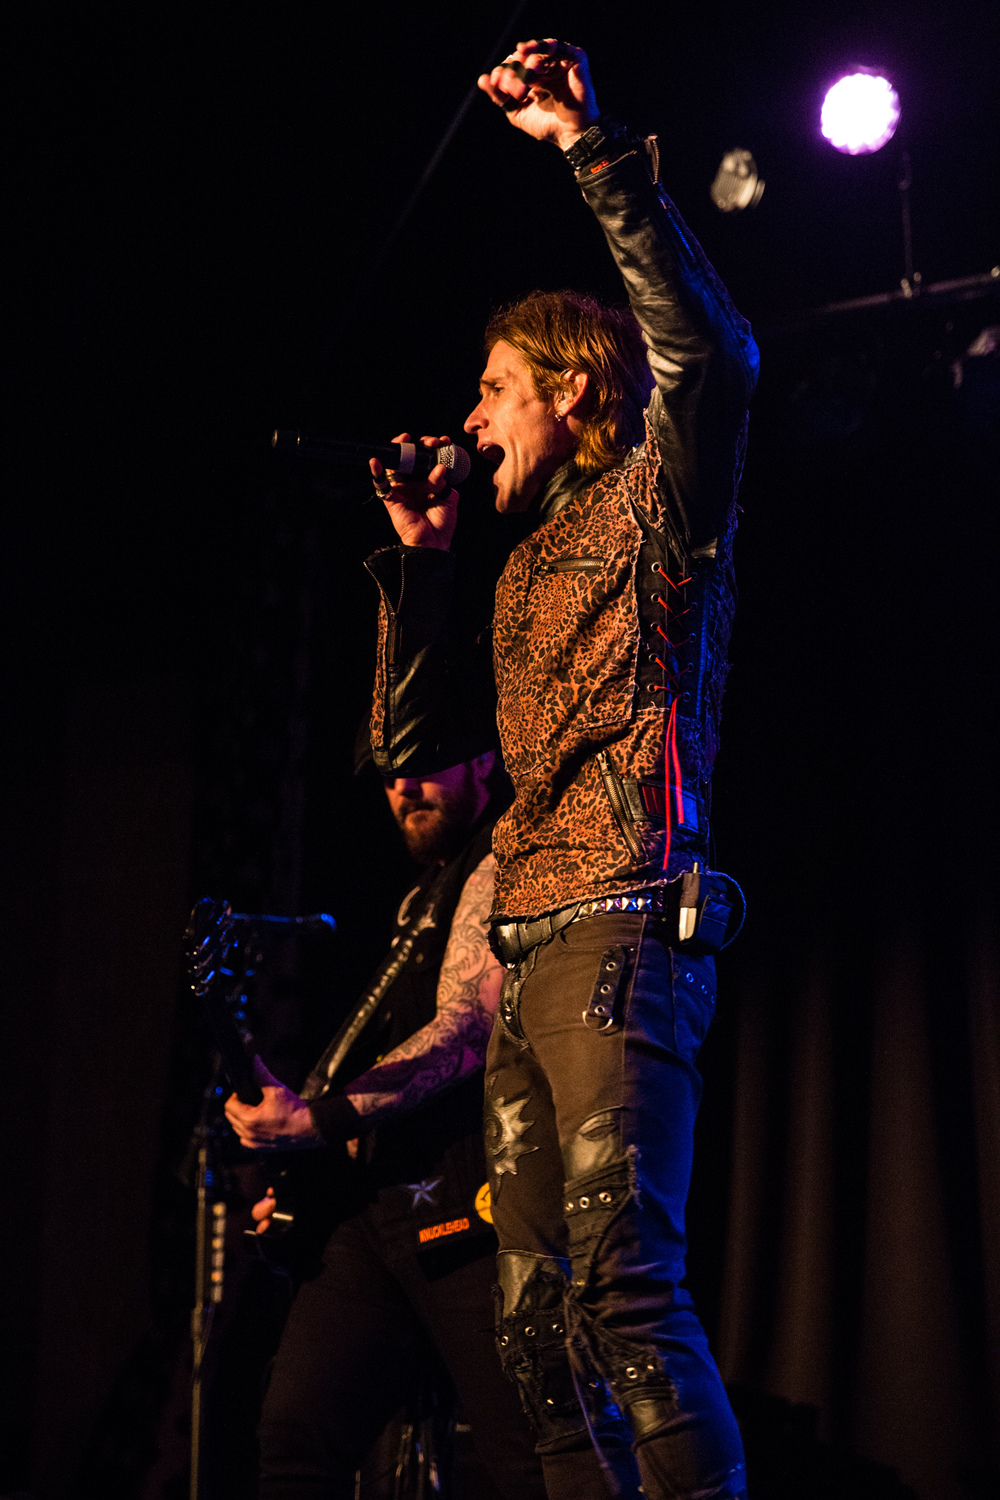 Buckcherry - Calgary Photographer © J. Dirom